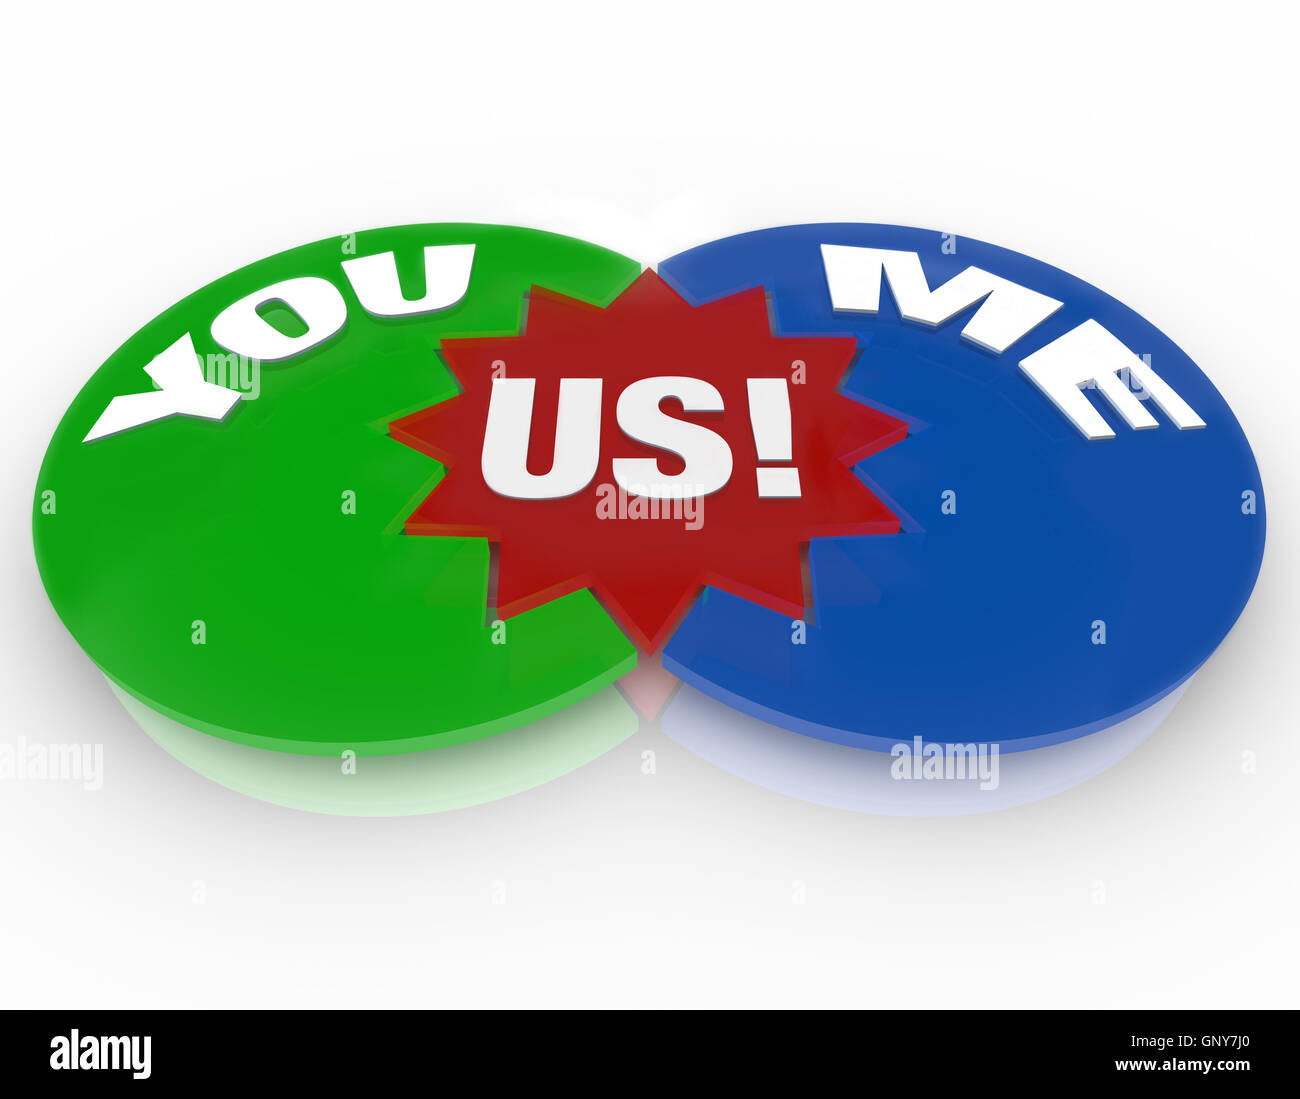 You me us venn diagram relationship love compatibility stock you me us venn diagram relationship love compatibility pooptronica